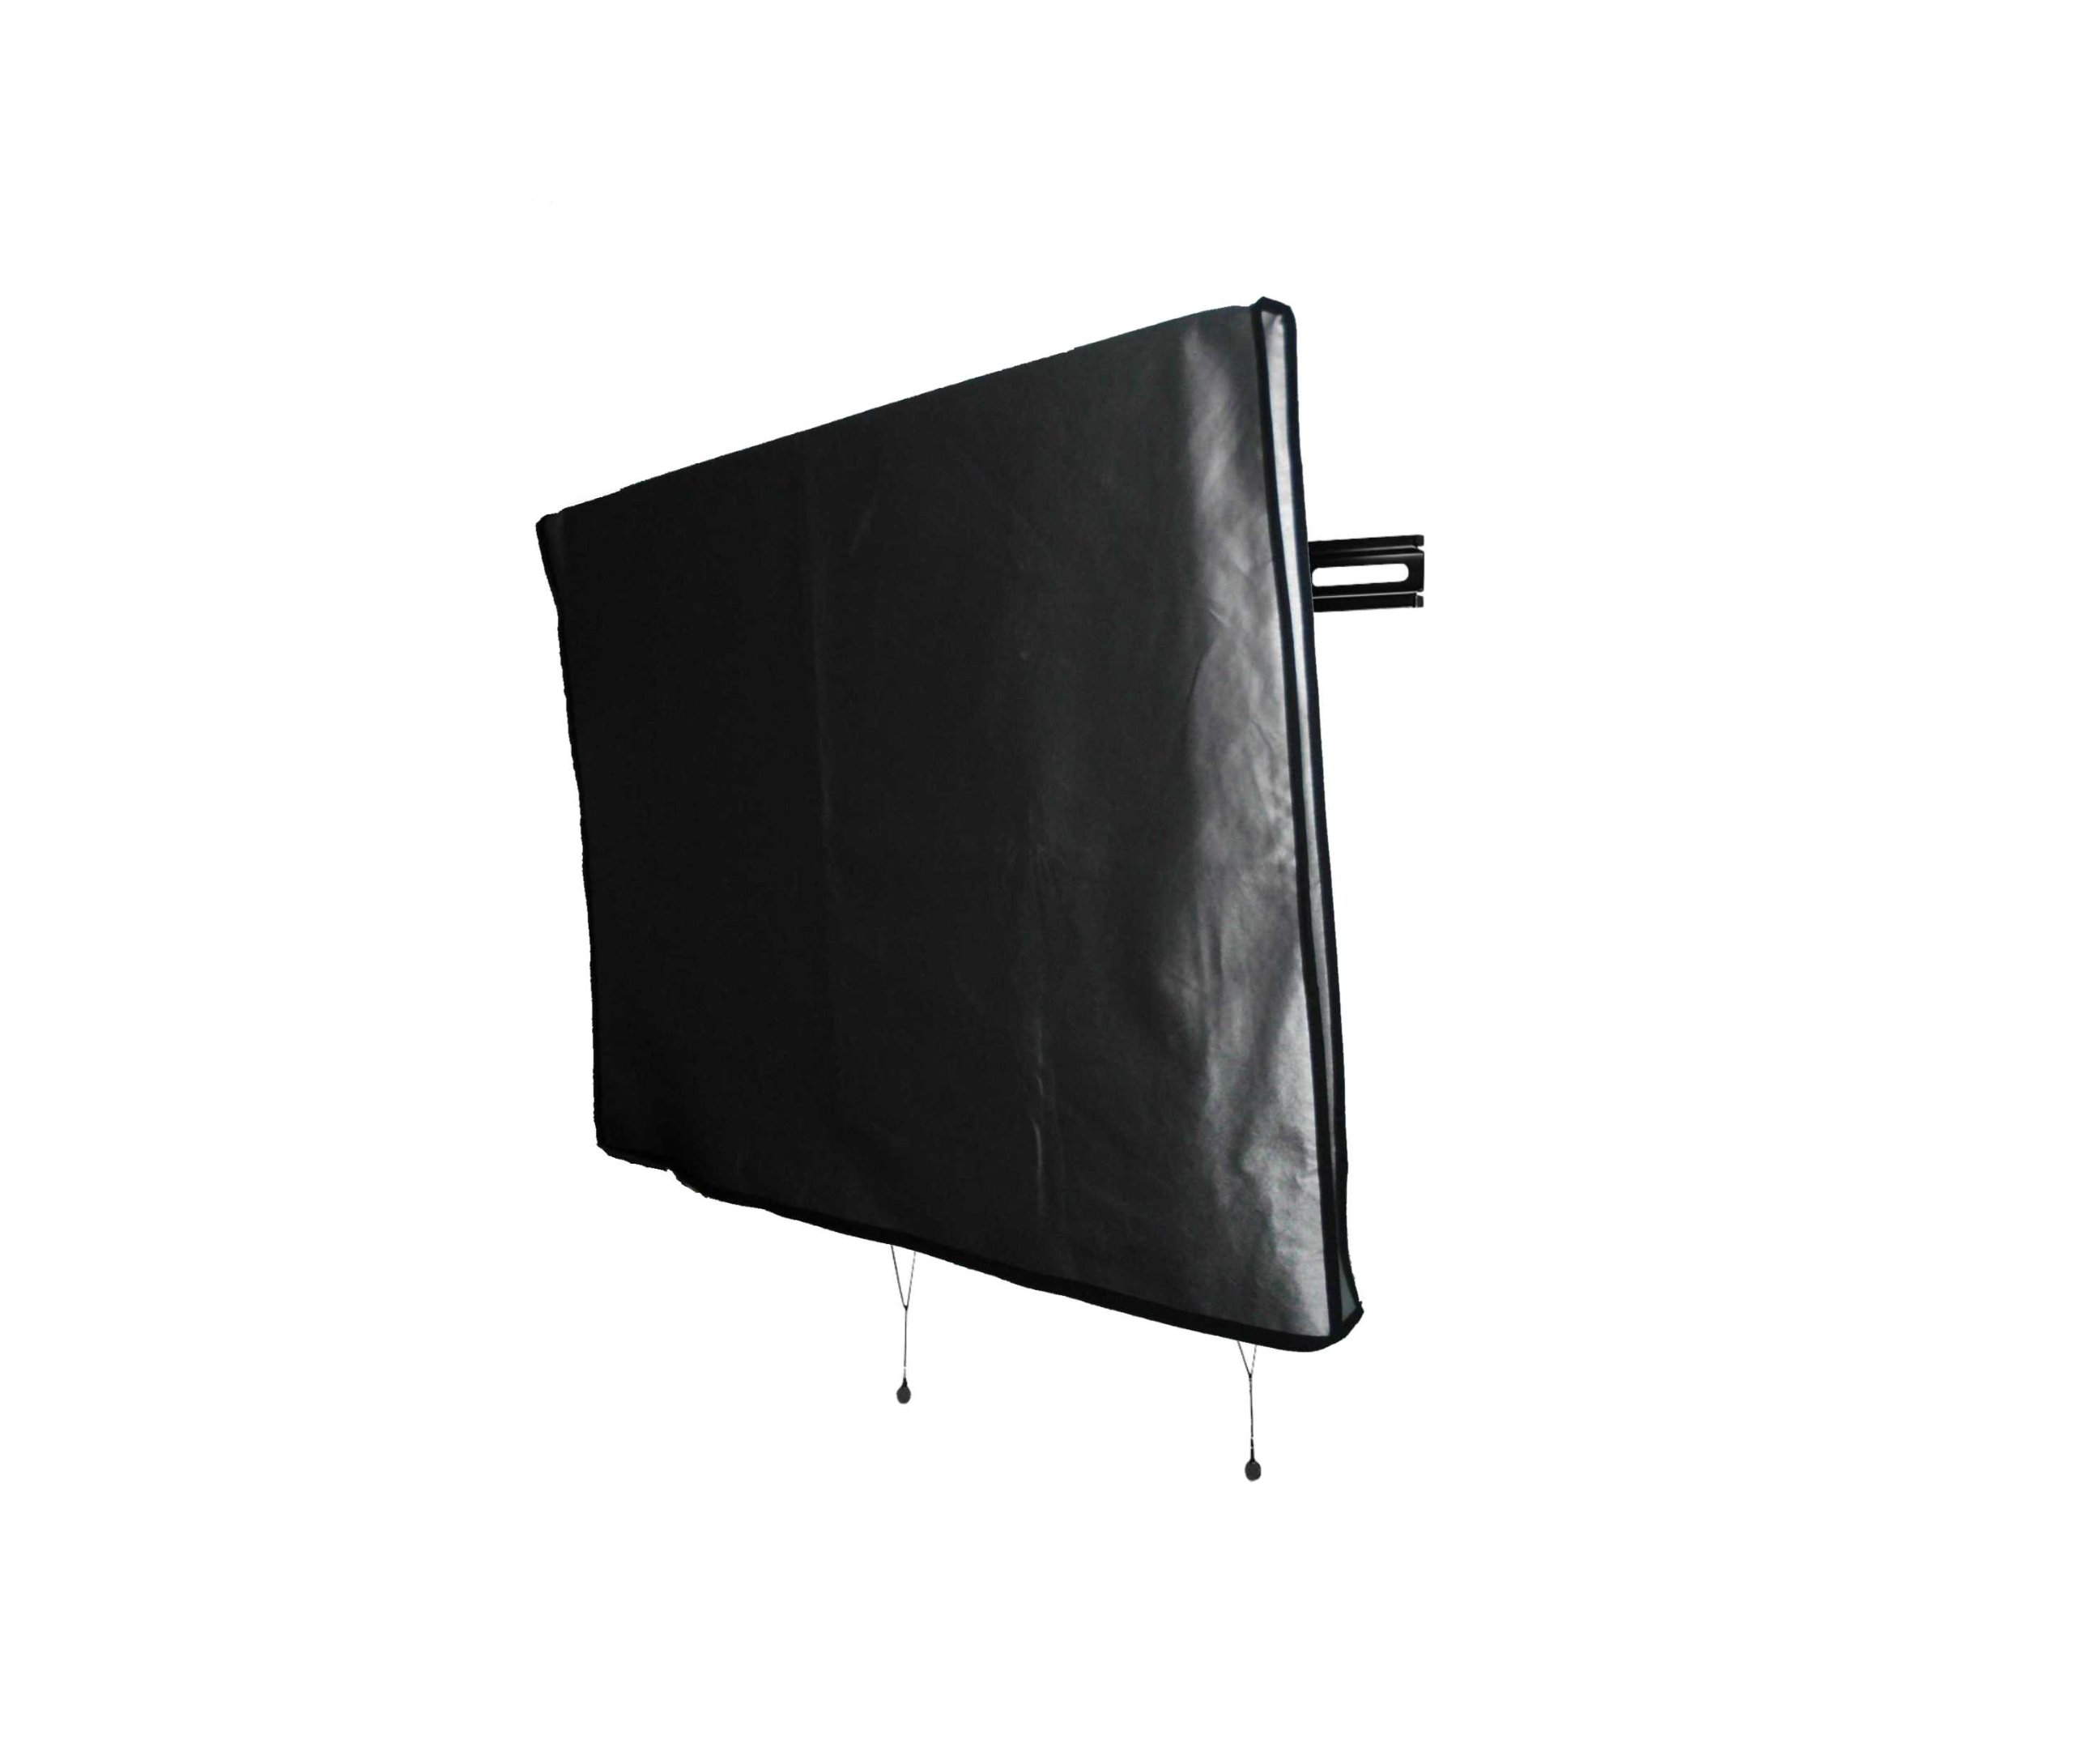 Marine Grade Nylon 32'' TV Dust Cover   (31.75'' wide x 3.75'' deep x 23'' high) Ideal for outdoor locations such as Restaurants, Hotels, Marinas or Poolside Locations. by Viziflex (Image #4)